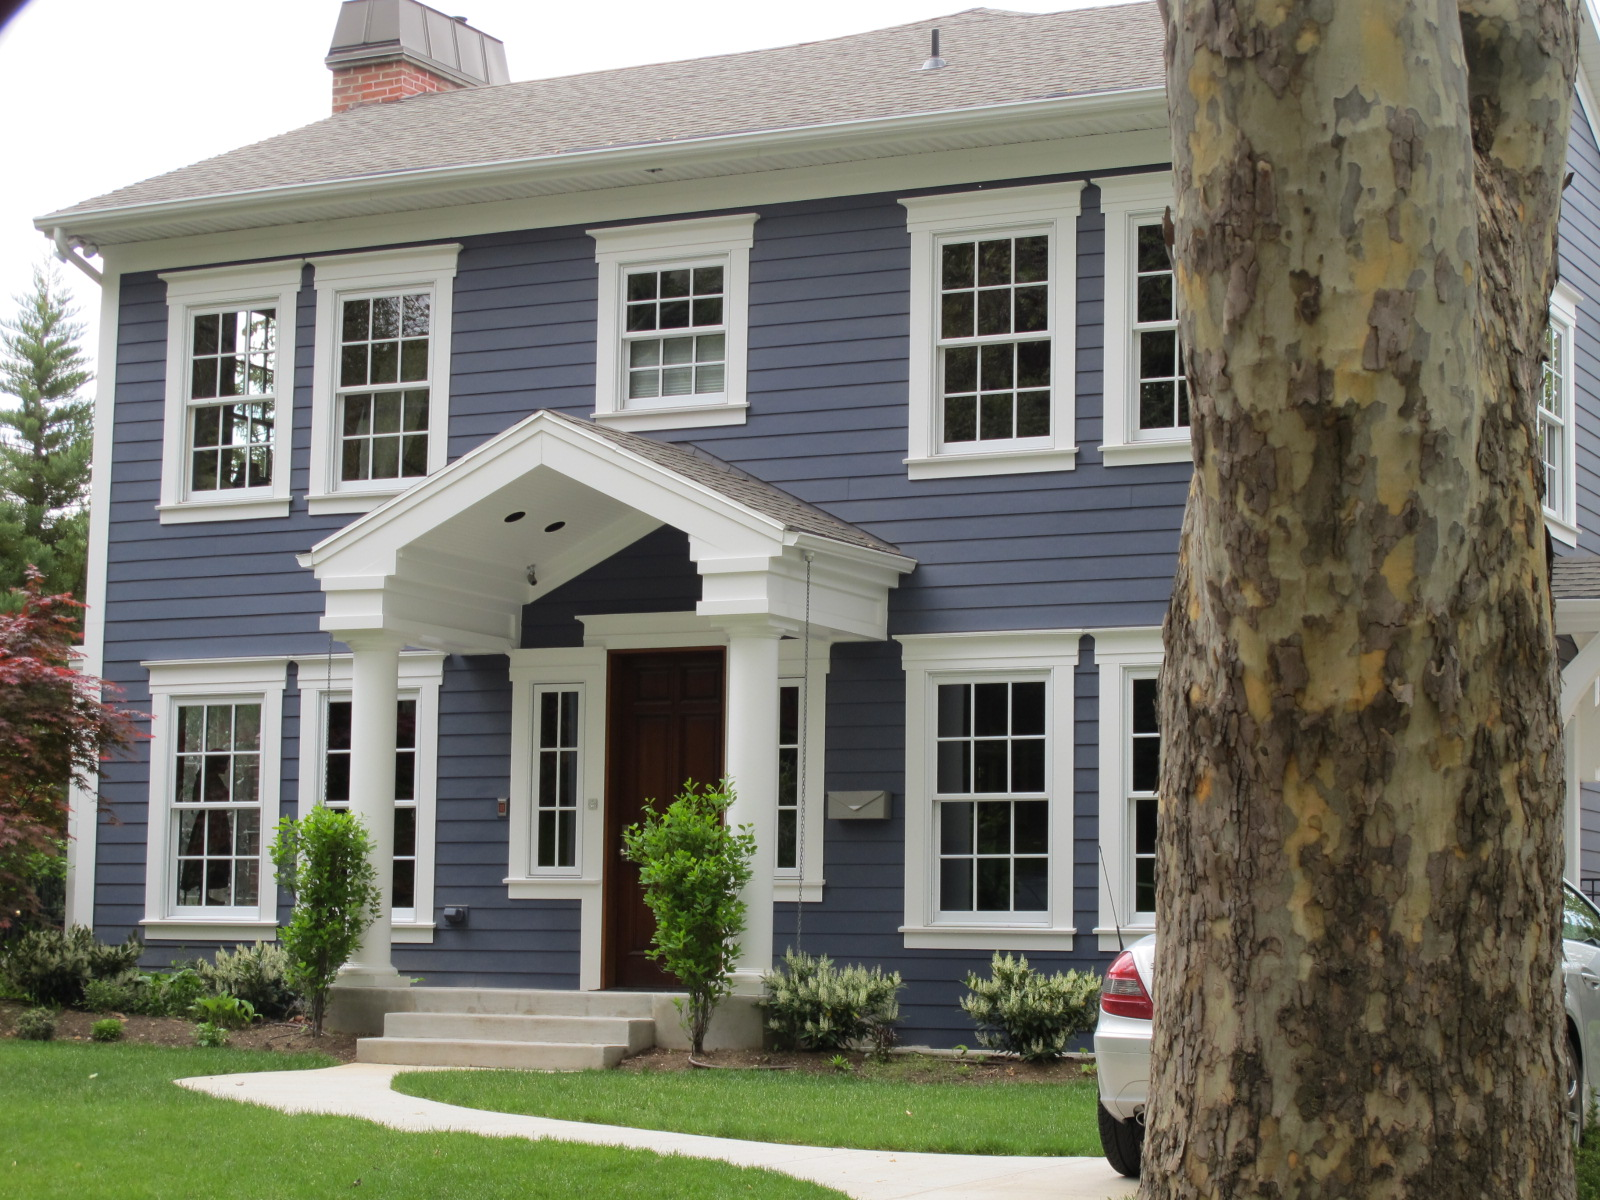 Michele dunker interiors blue houses - Houses with white trim ...